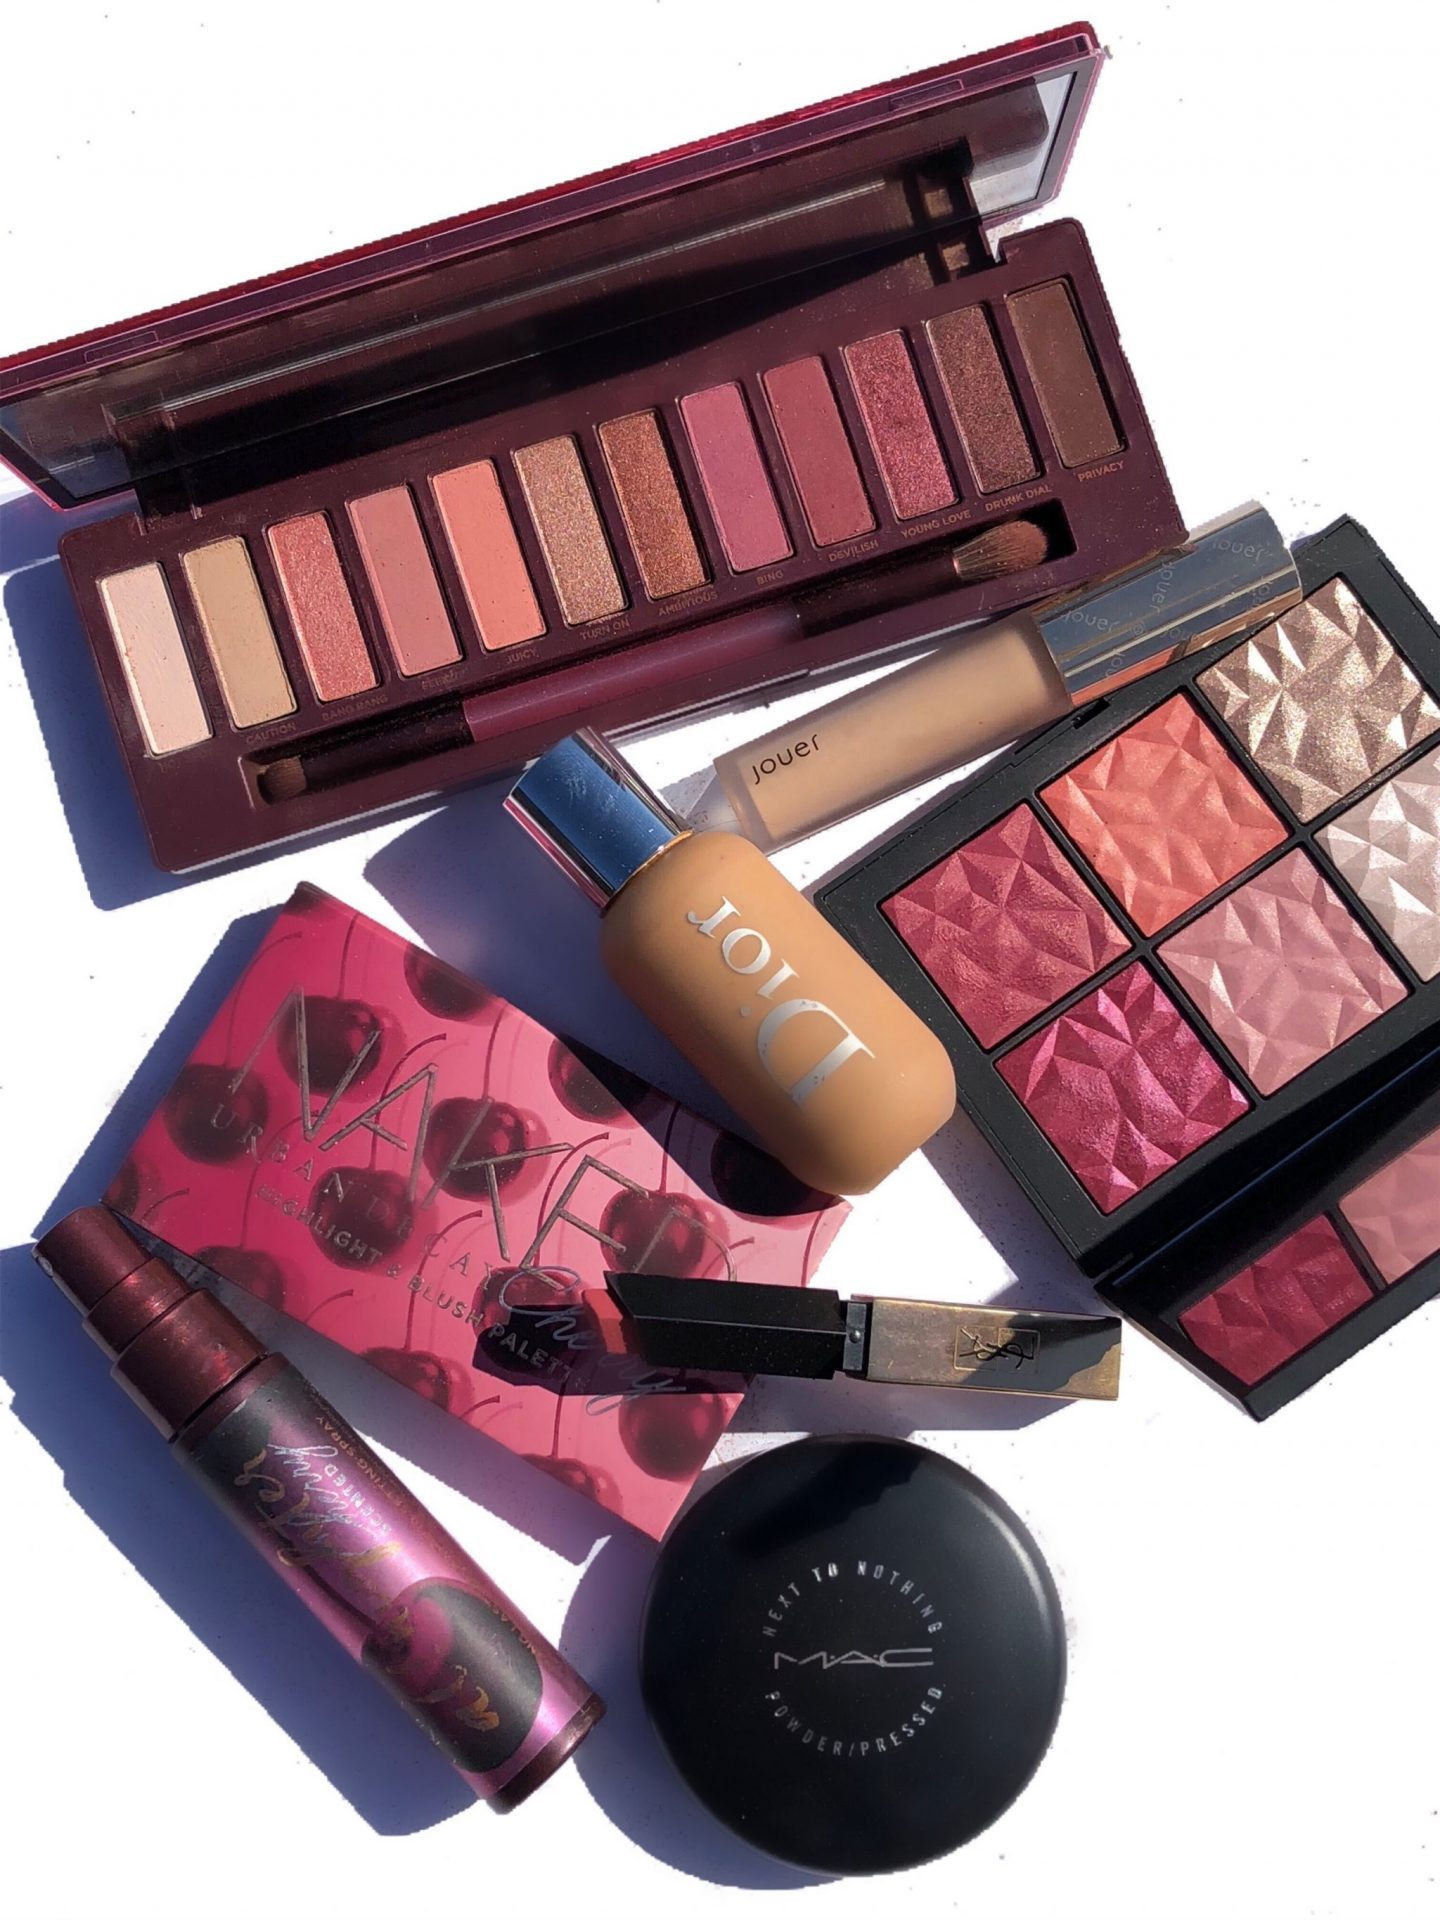 Fall Makeup Edit: 8 Products I'm Currently Loving